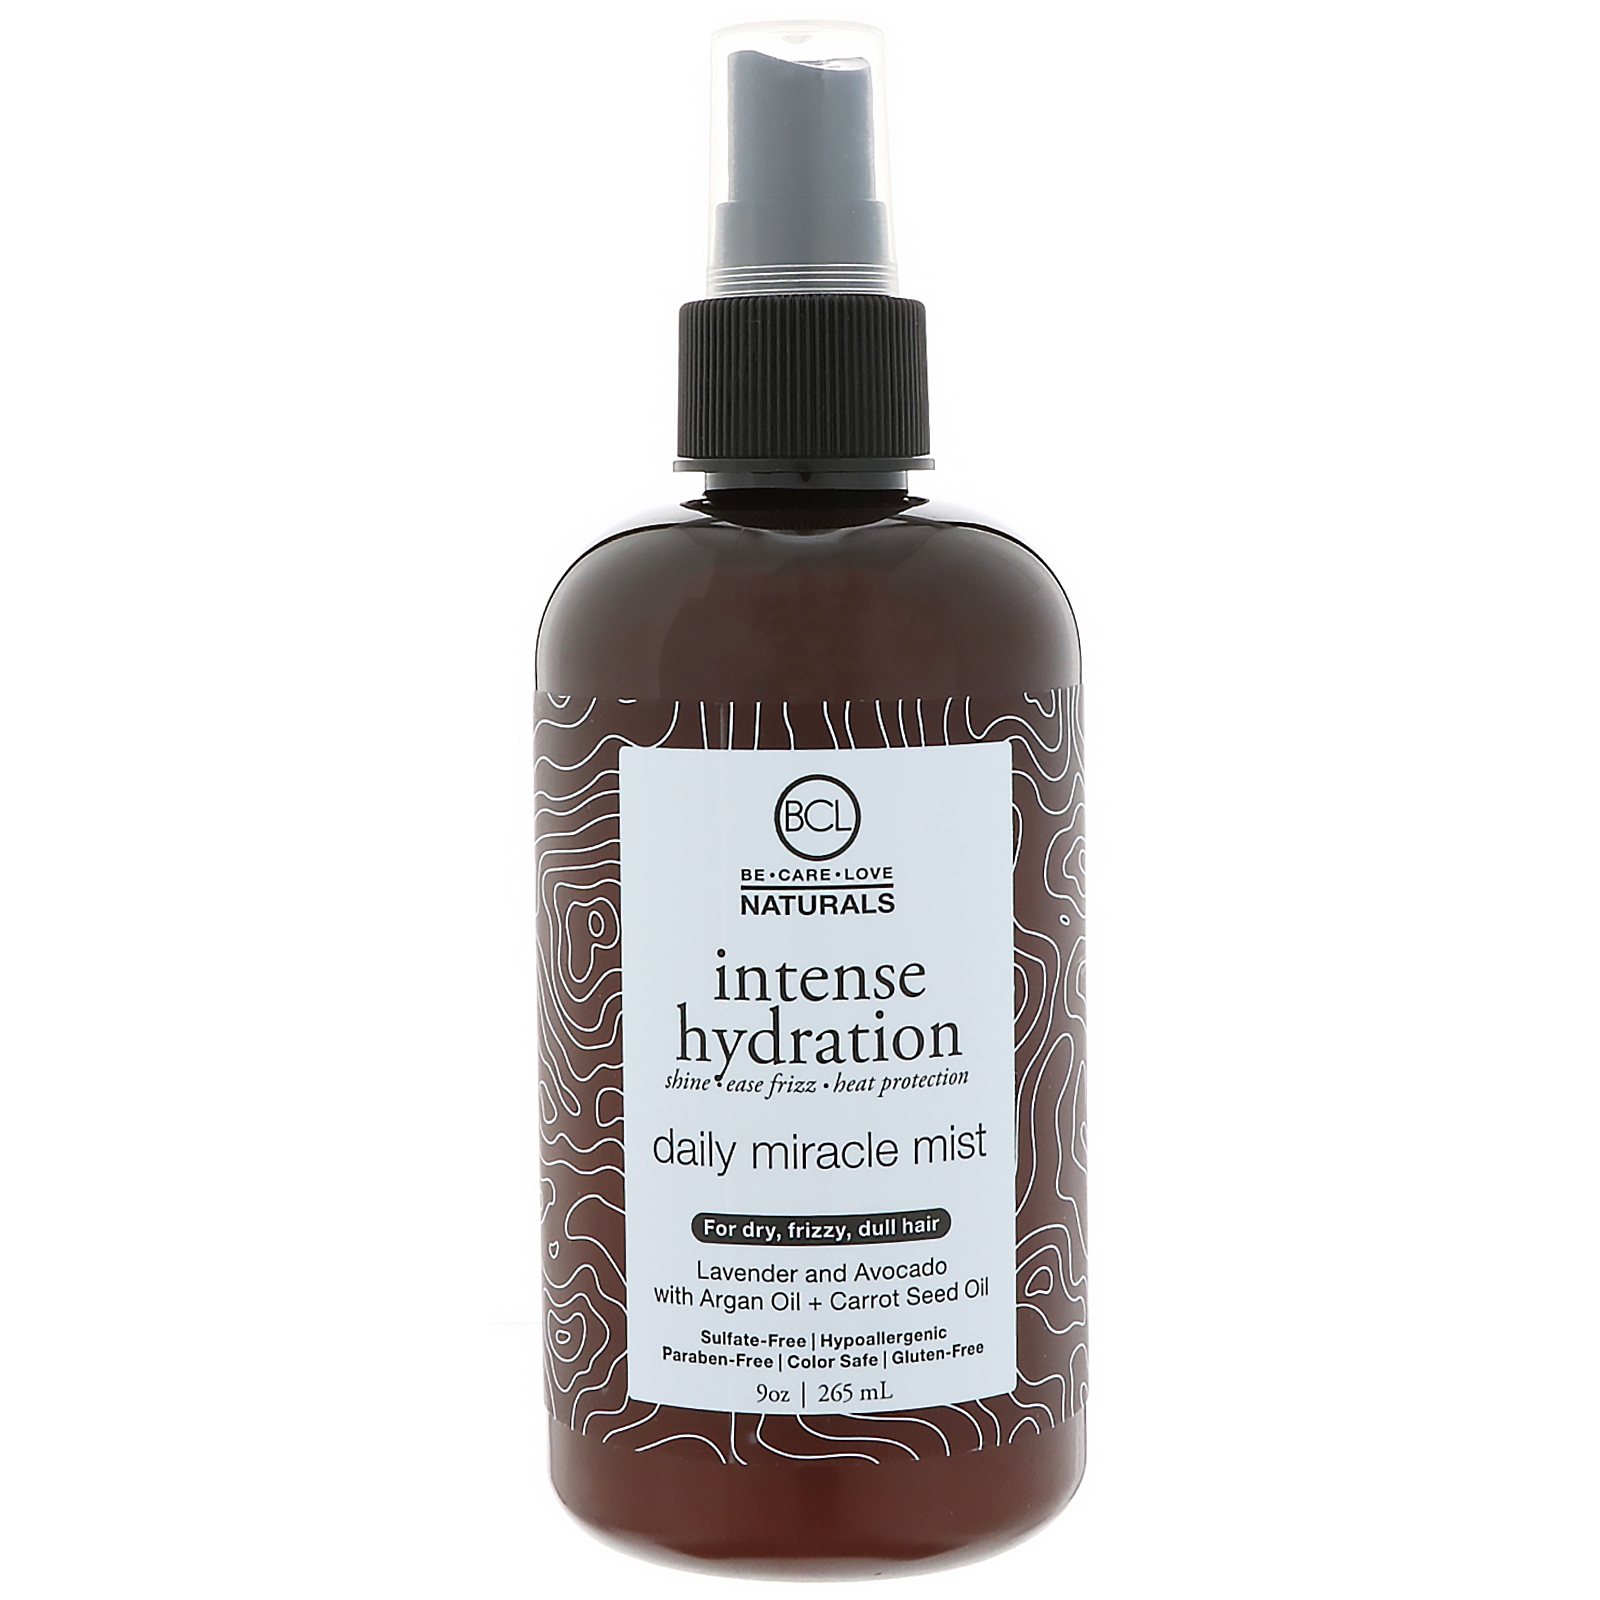 BCL, Be Care Love, Naturals, Intense Hydration, Daily